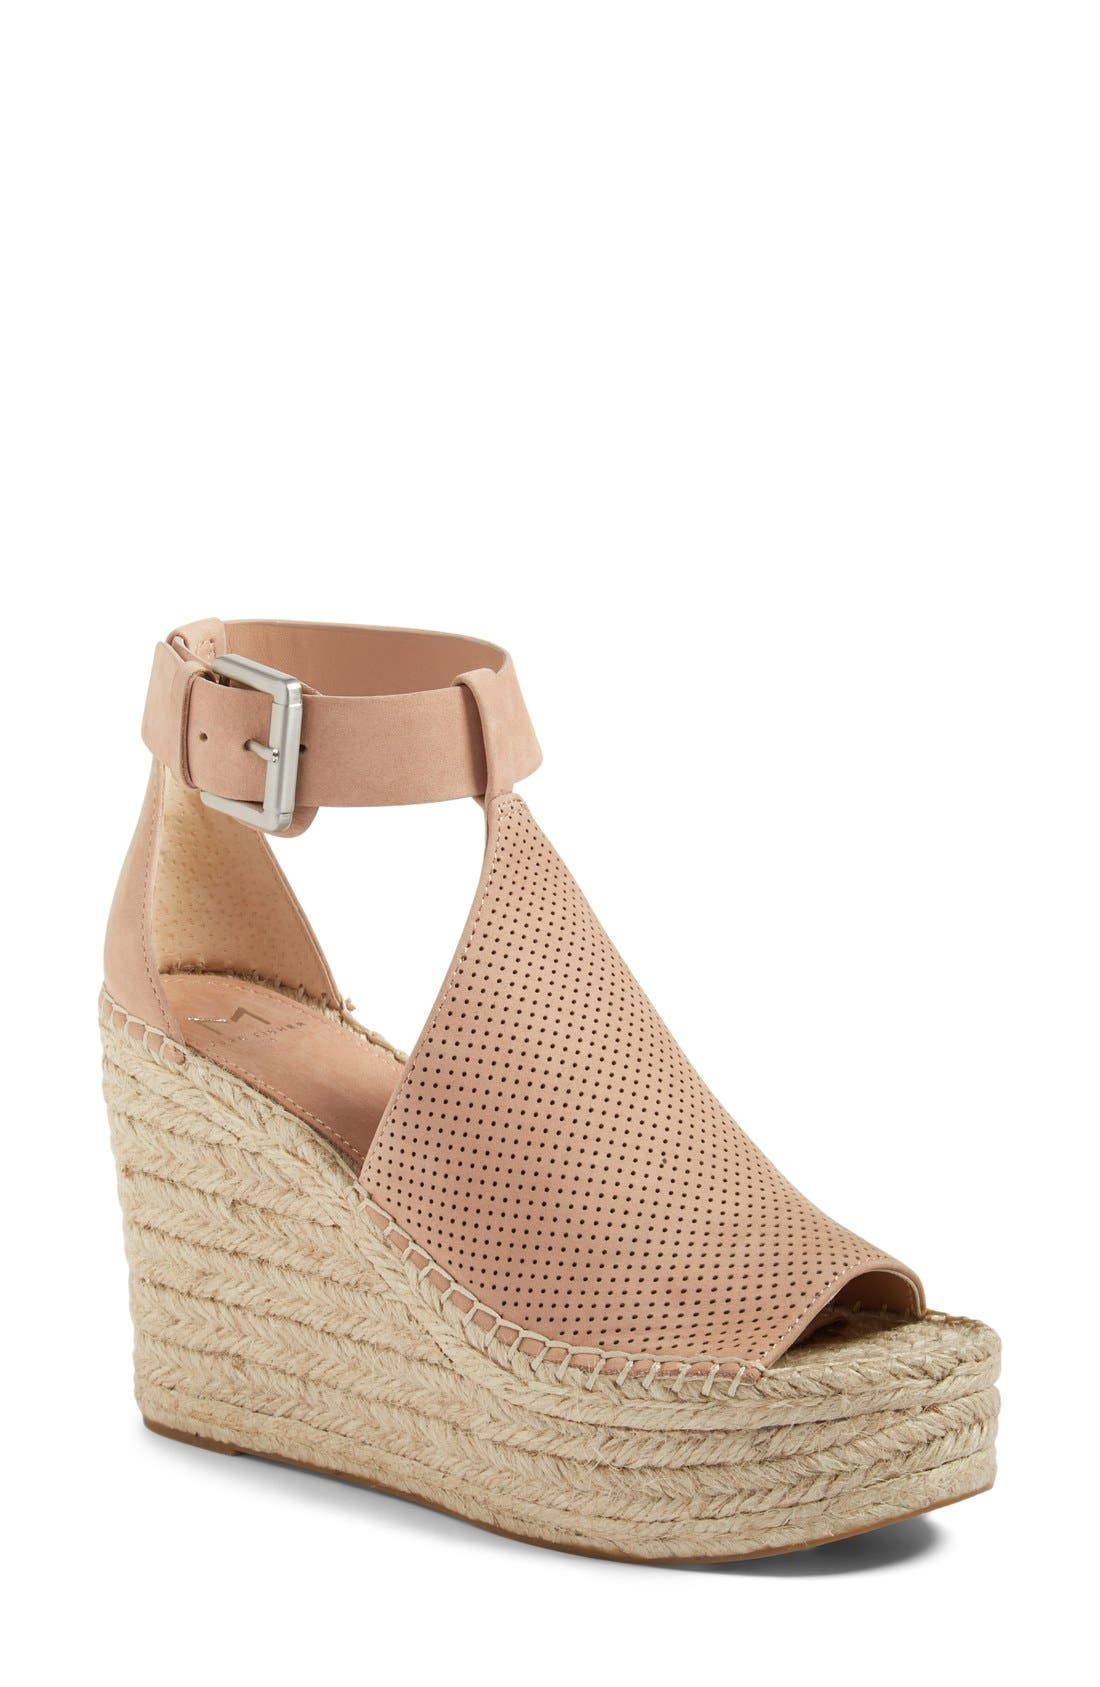 Main Image - Marc Fisher LTD Annie Perforated Espadrille Platform Wedge (Women)